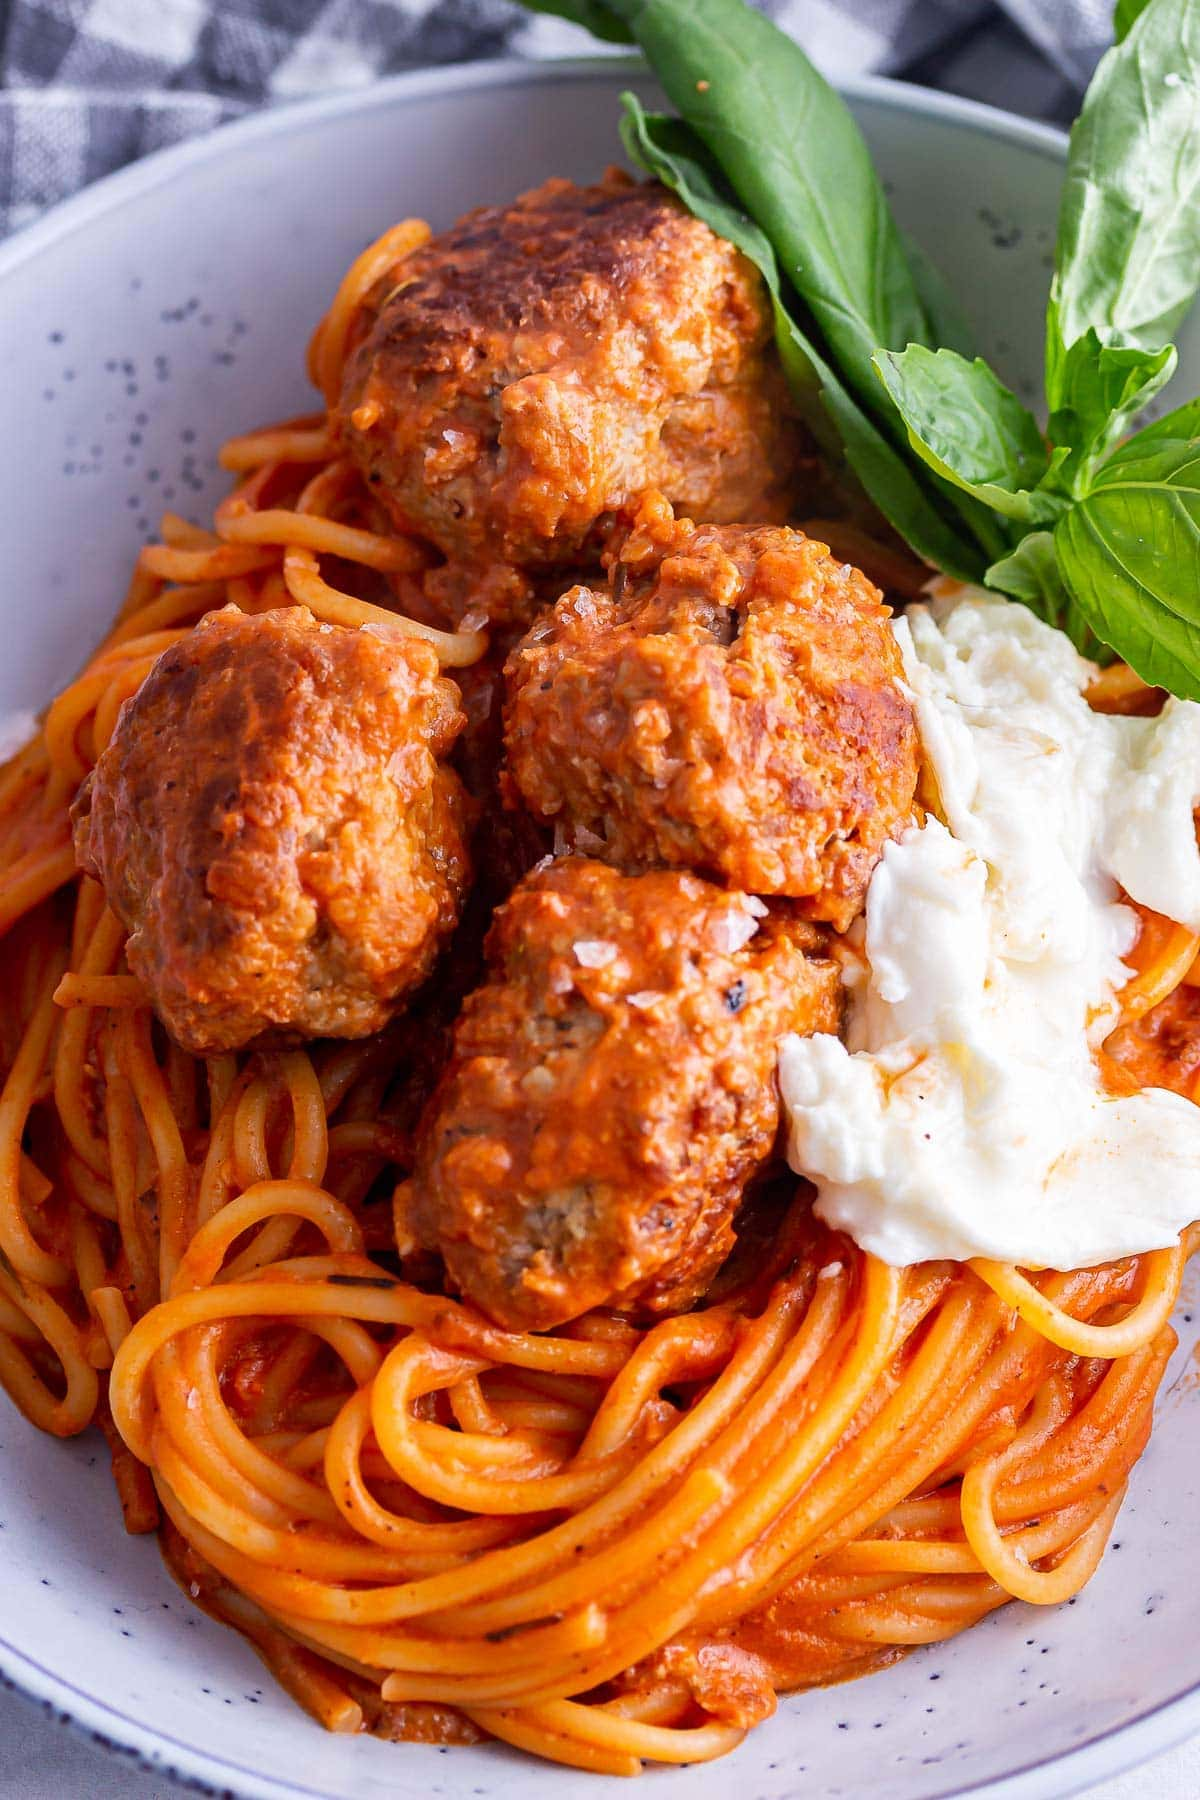 Close up of meatballs on tomato spaghetti with mozzarella